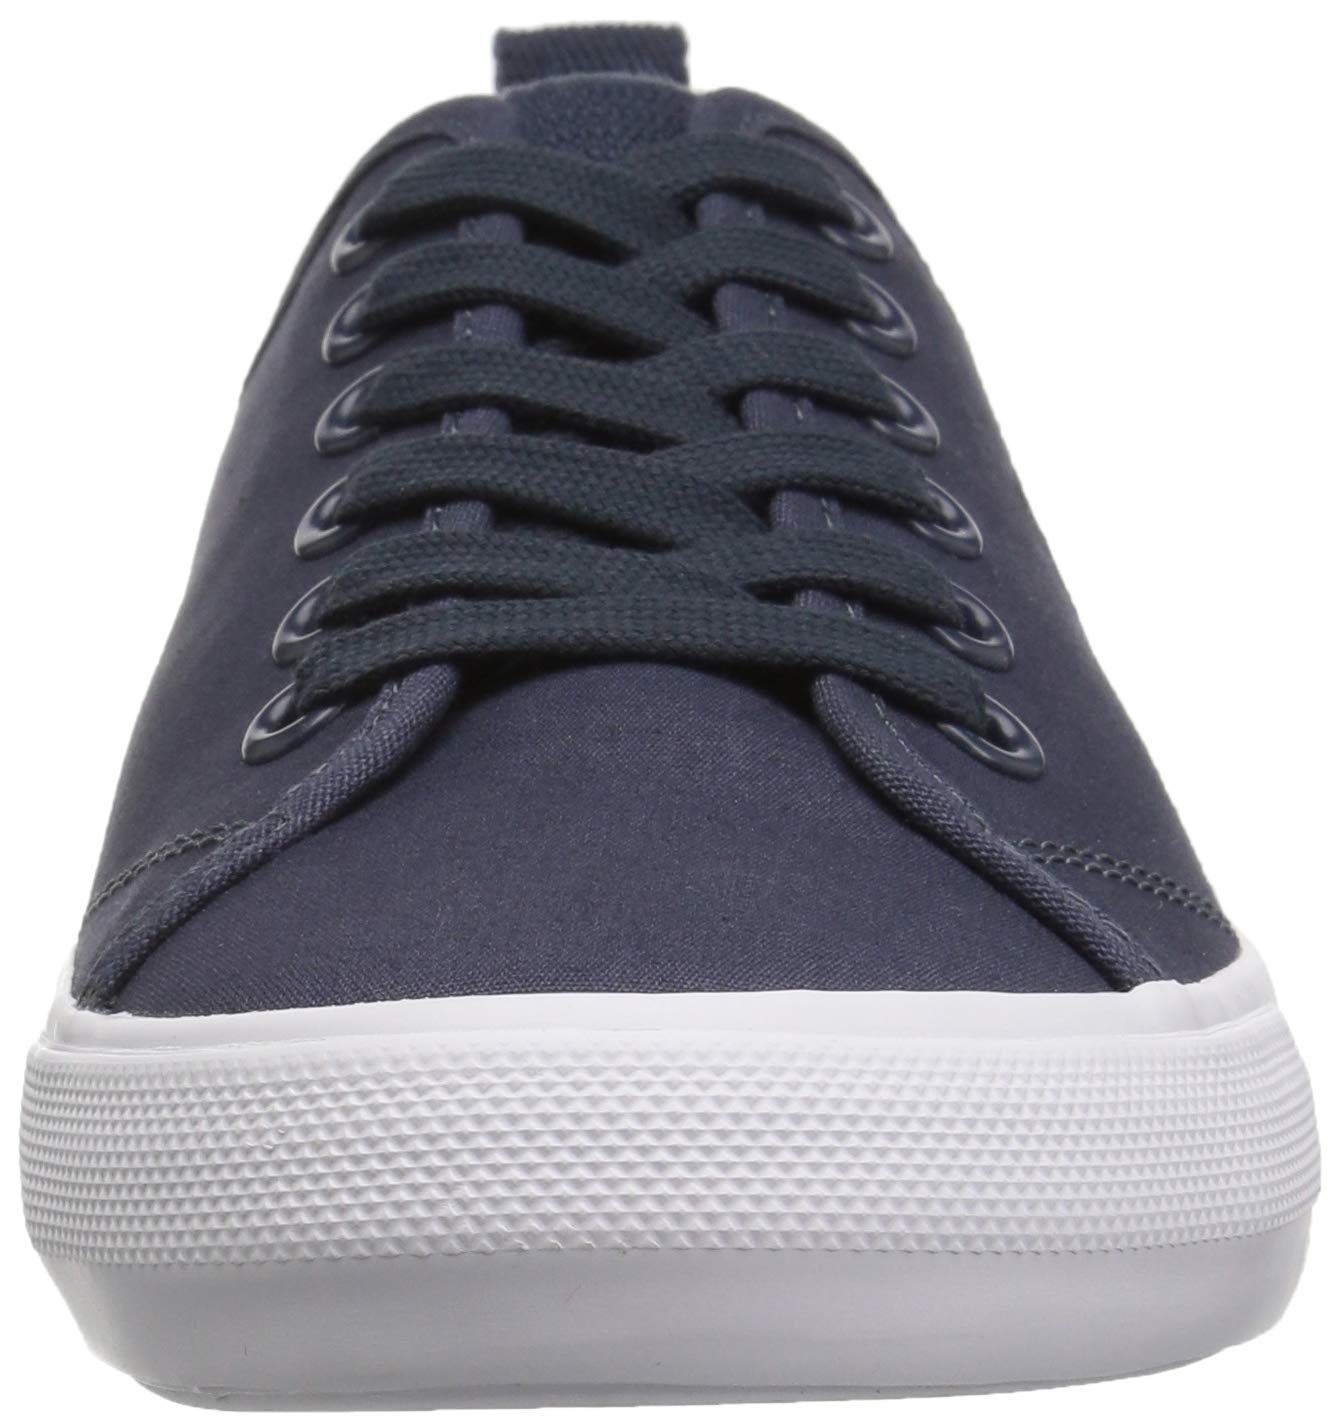 Fred Perry Men's Horton Shower Resist FINE CNV Sneaker, Dark air Force, 6 D UK (7 US) by Fred Perry (Image #4)